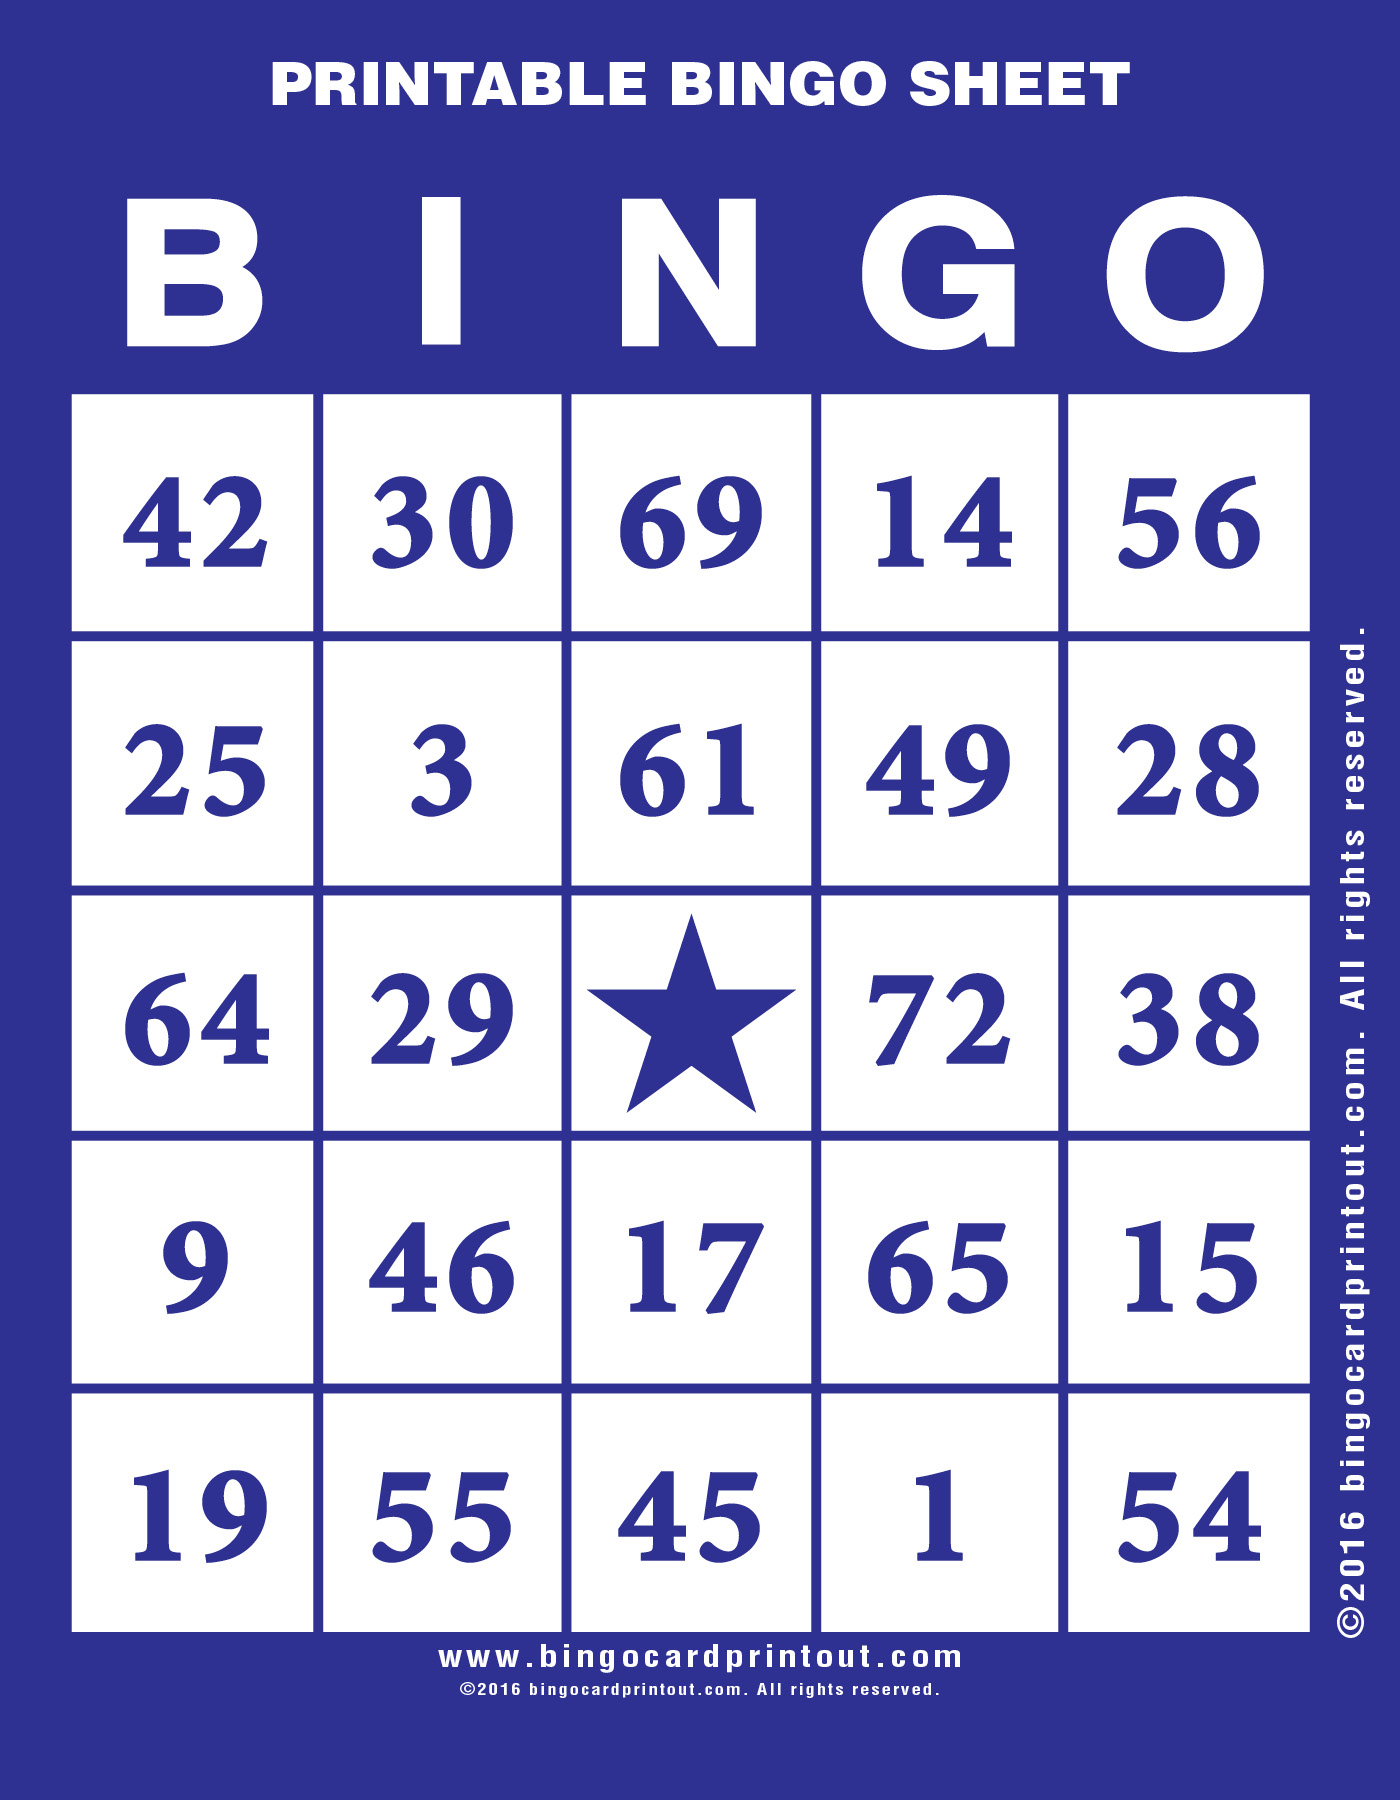 Select for our large inventory for you next printable bingo sheet .